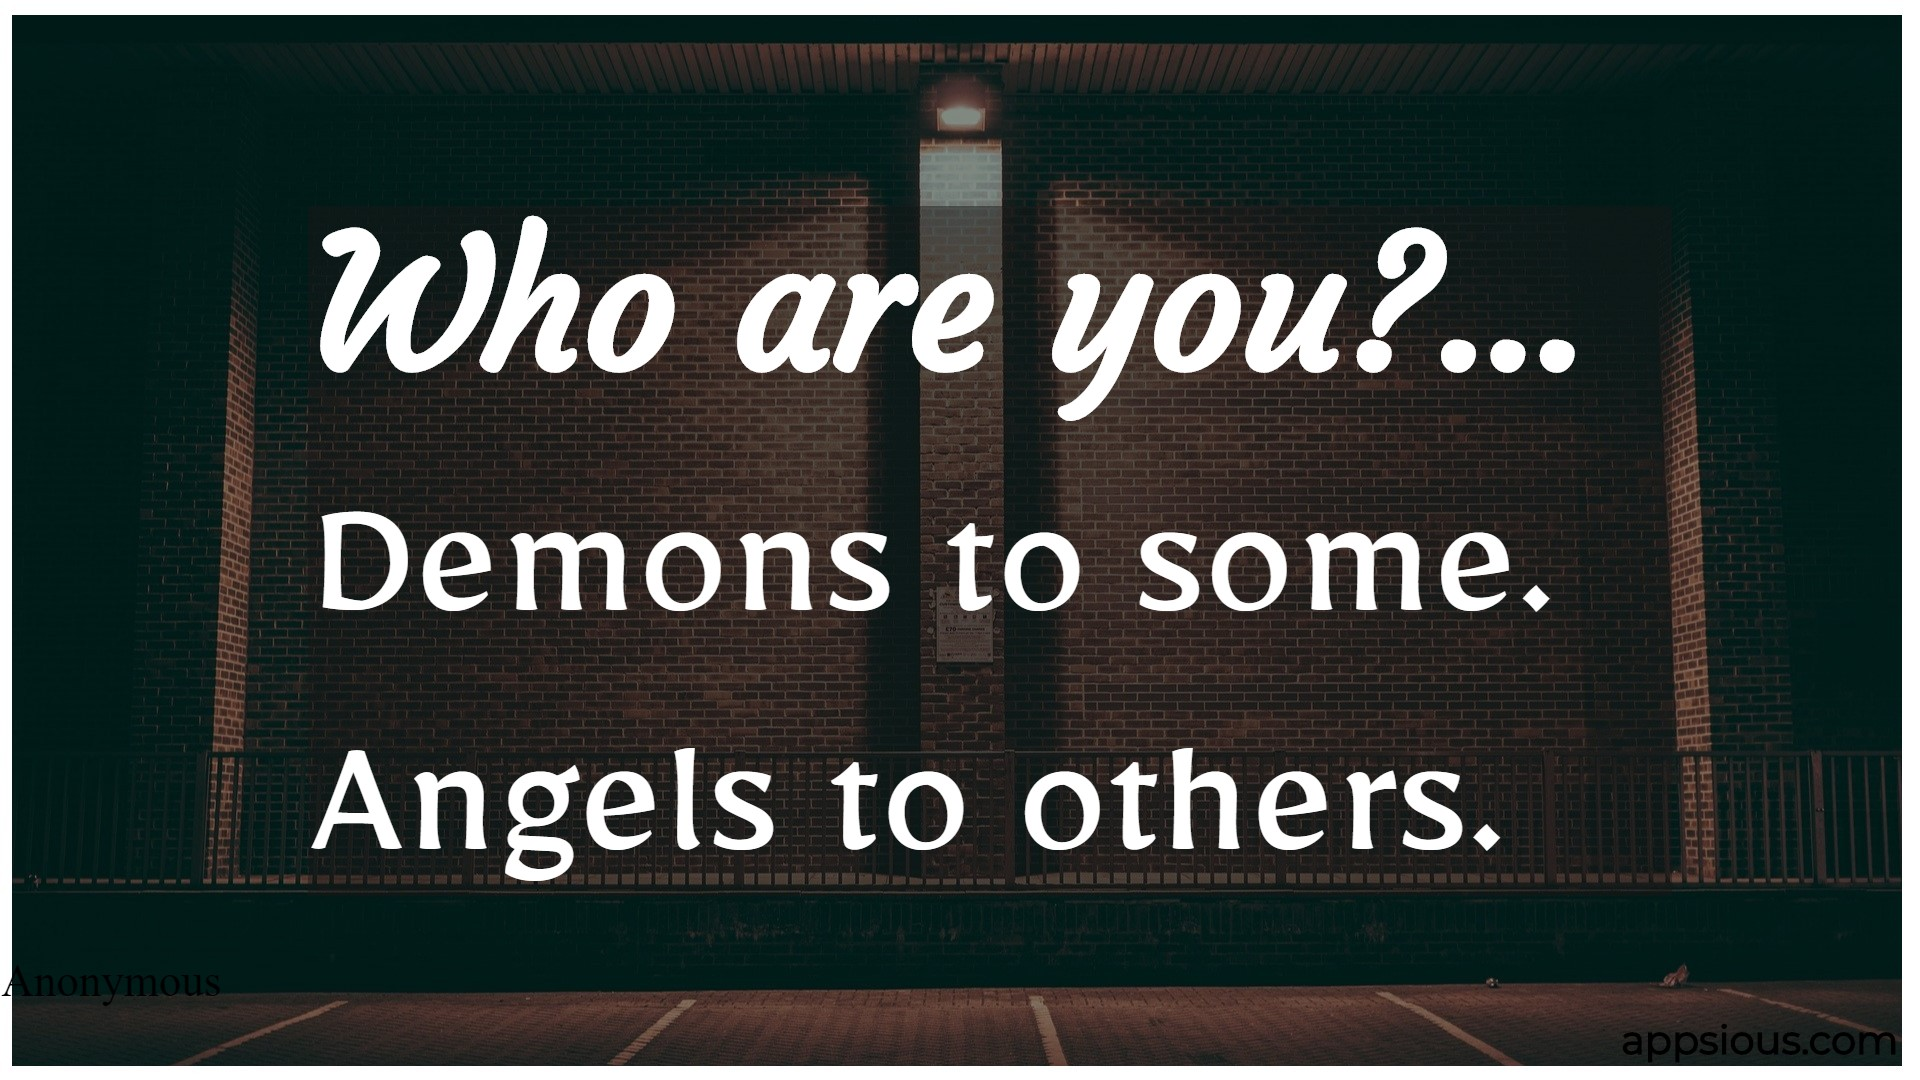 Who are you?... Demons to some. Angels to others.